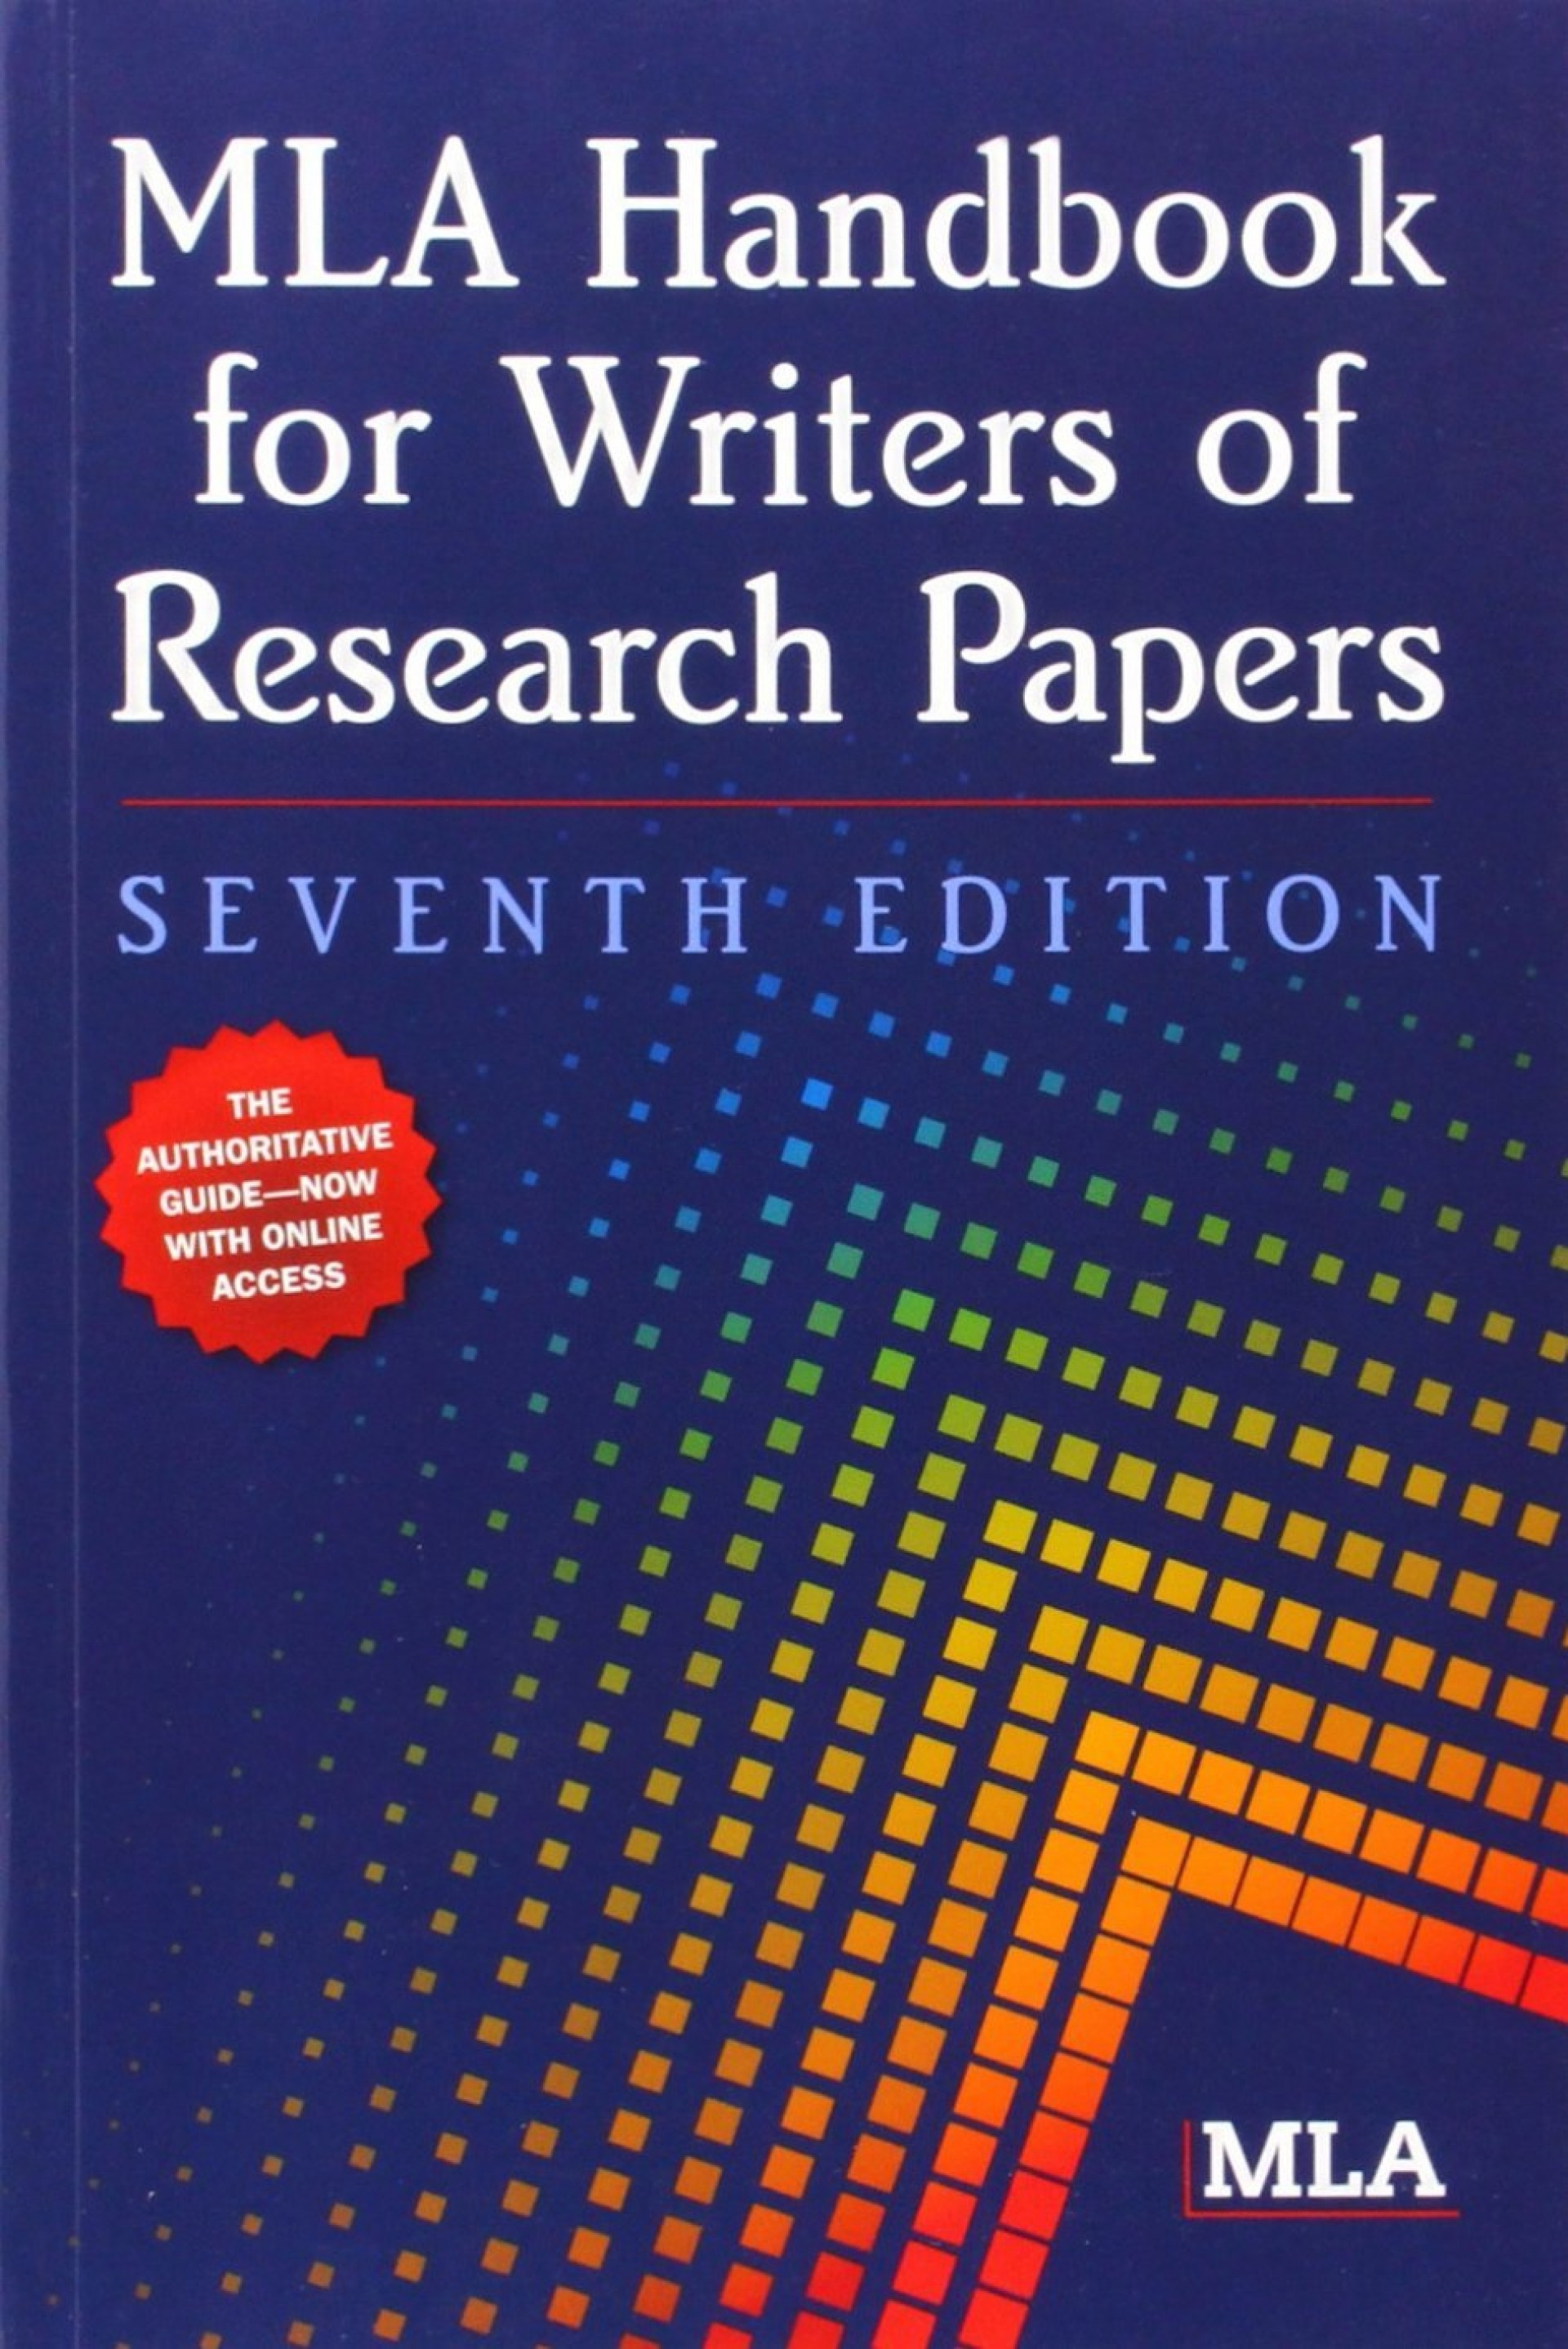 001 Research Paper Mla Handbook For Writers Of Papers 8th Edition Unique Pdf Free Download 1920